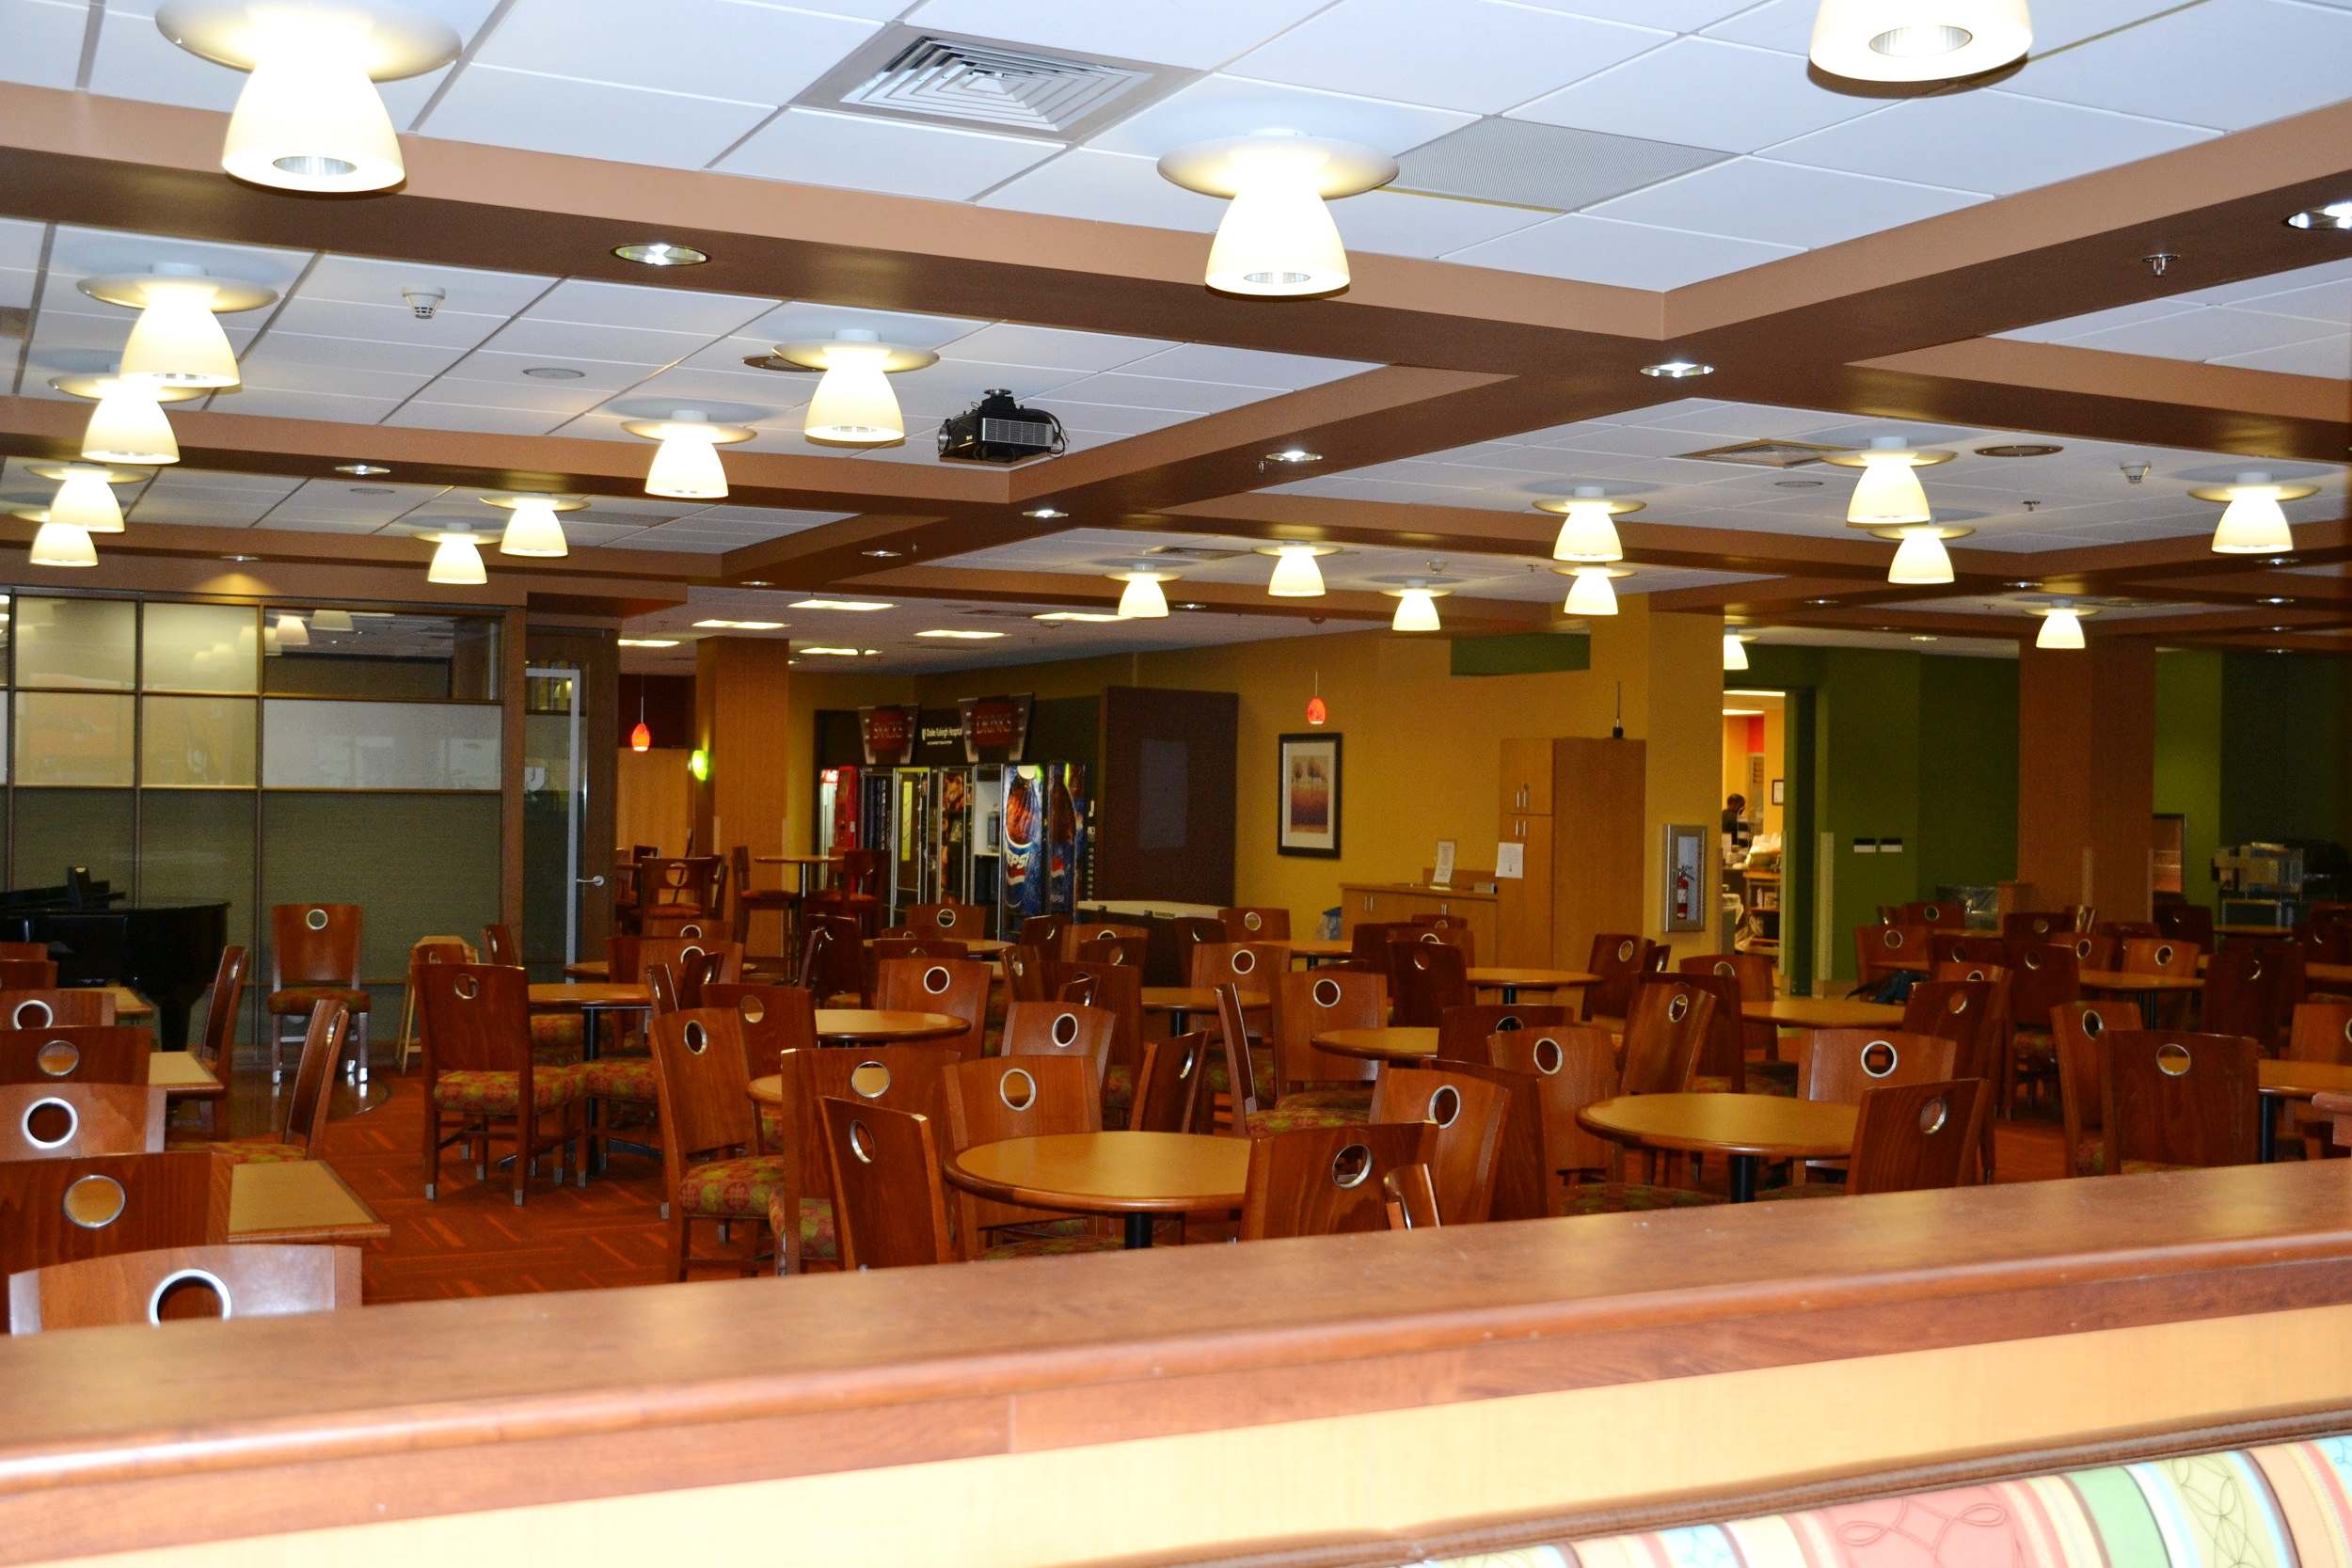 Restaurants Amp Food Service Facilities Projects Riley